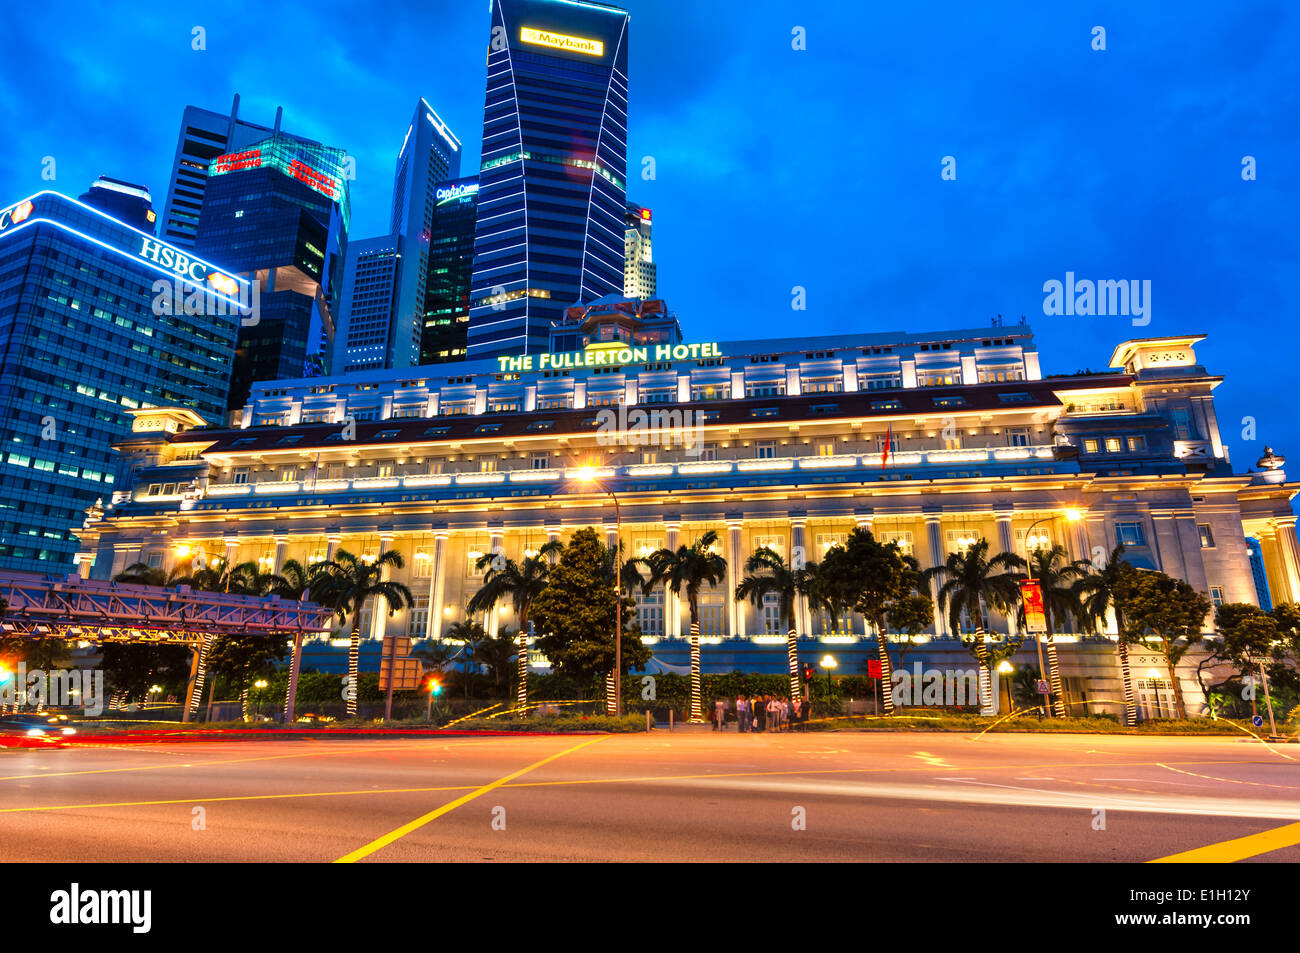 The Fullerton Hotel lit up in early evening in Singapore. - Stock Image